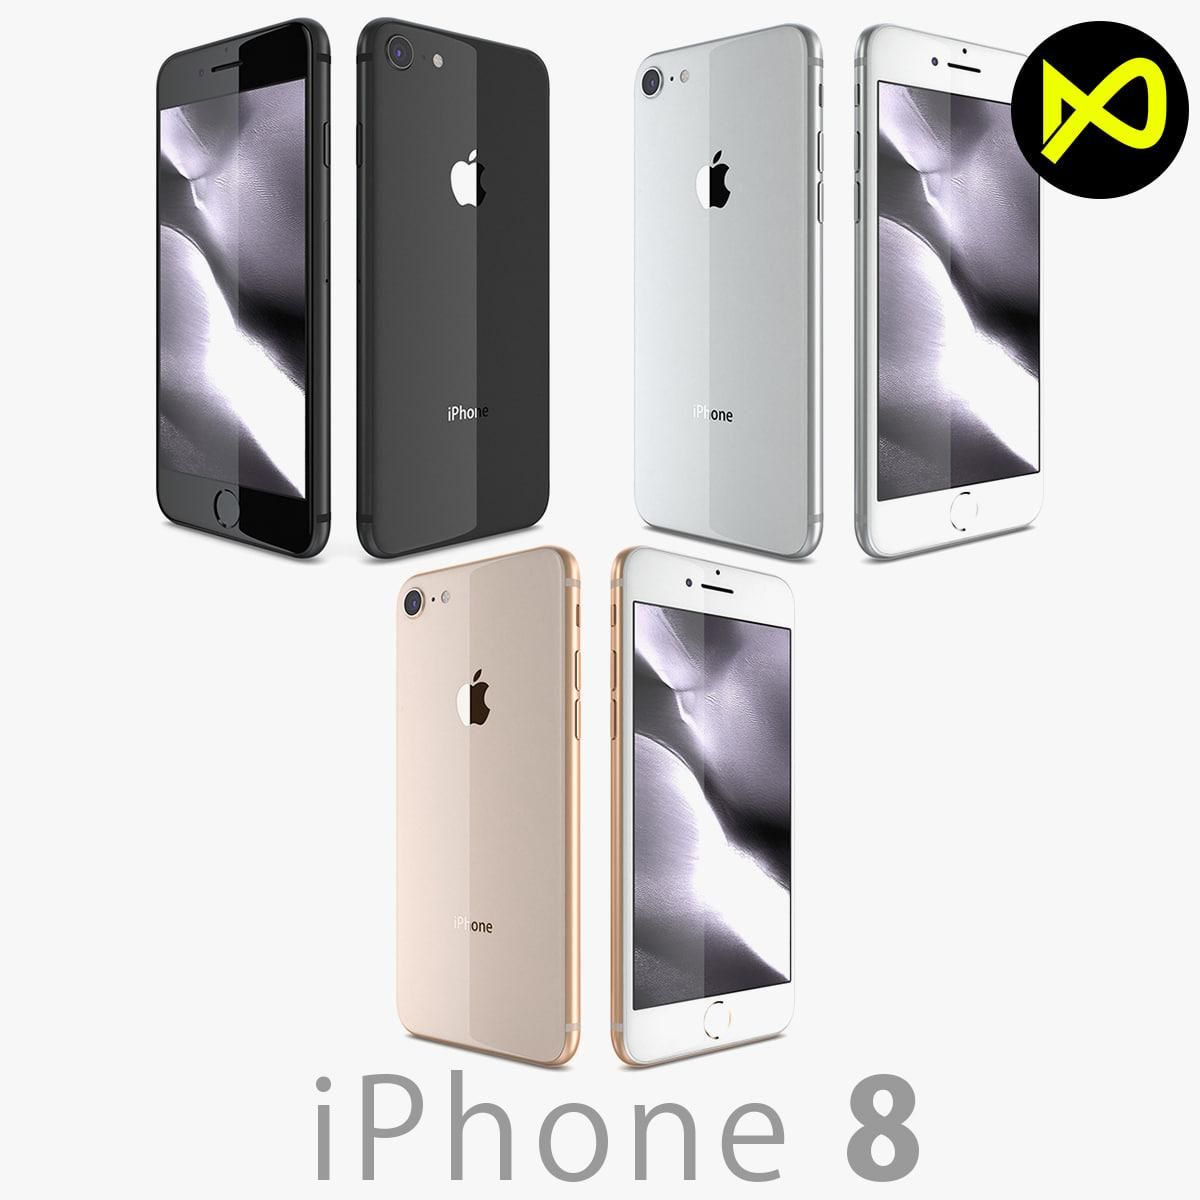 Apple Iphone 8 All Colors 3d Model Ad Iphone Apple Model Colors Apple Iphone Iphone Apple Model